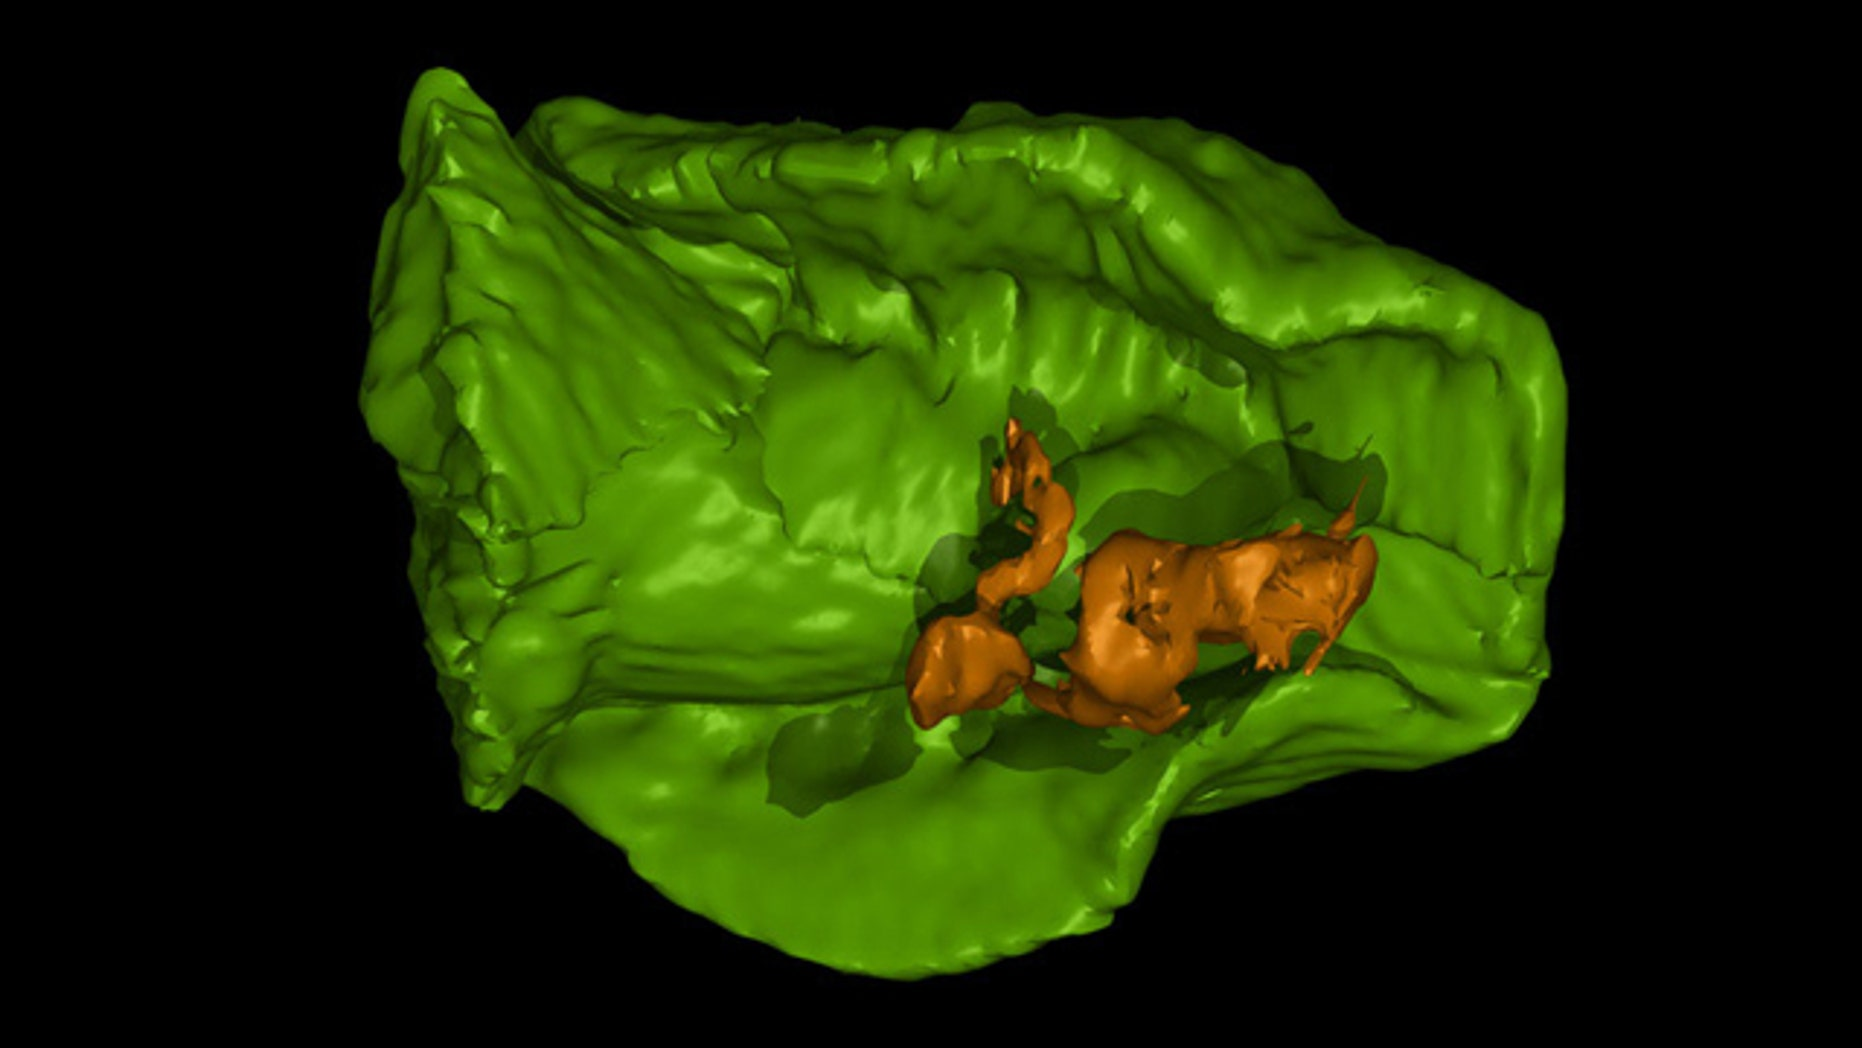 This virtual reconstruction shows the newly described species called Drakozoon kalumon, including its hood (green) used by the animal for protection against predators, and its feeding arms (brown), which are coiled.